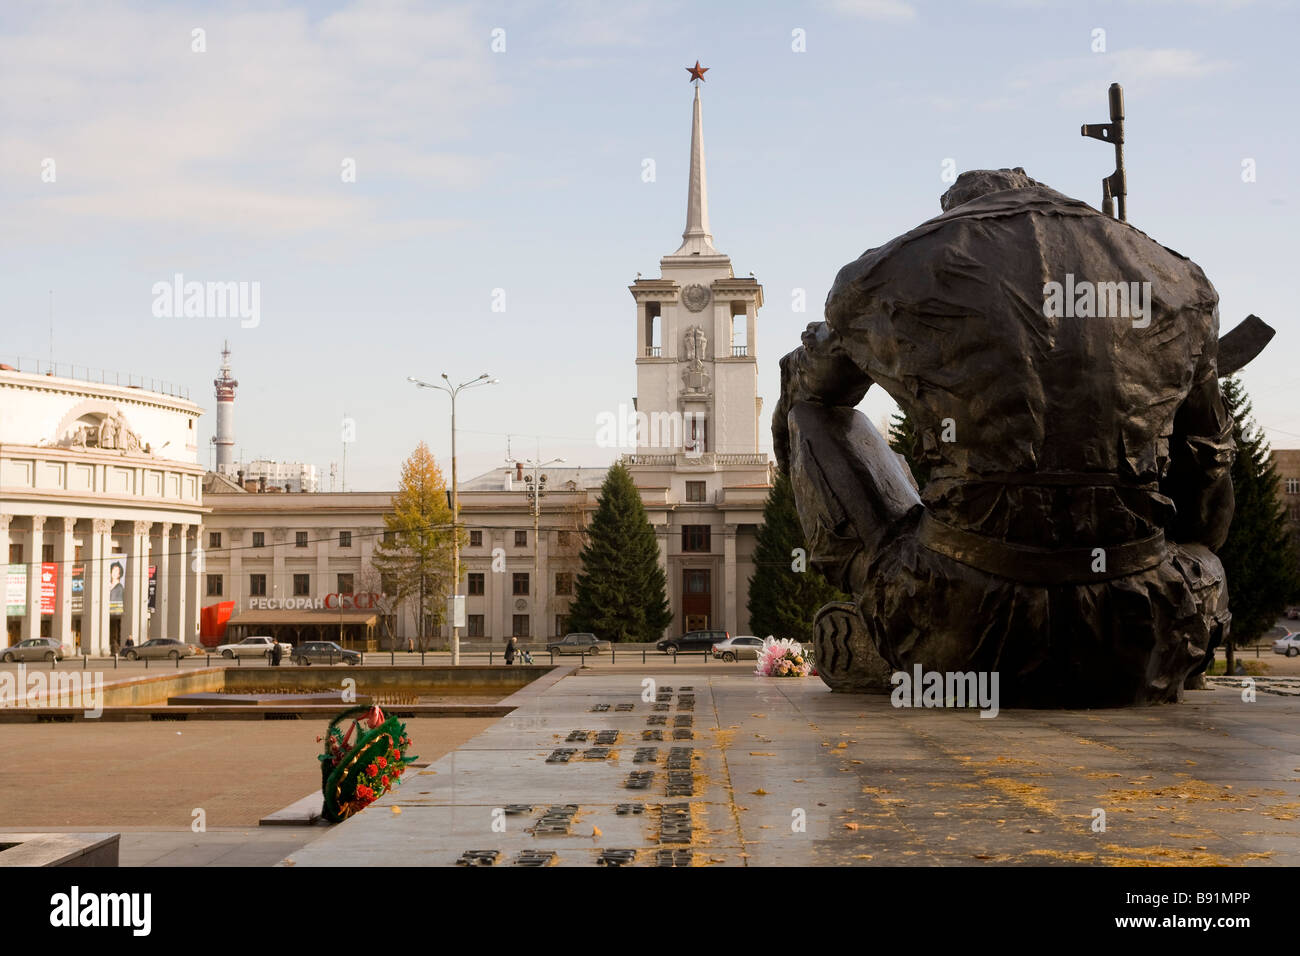 Russia Chechnya war memorial and former KGB headquarters in the background, Ekaterinburg, Russia - Stock Image